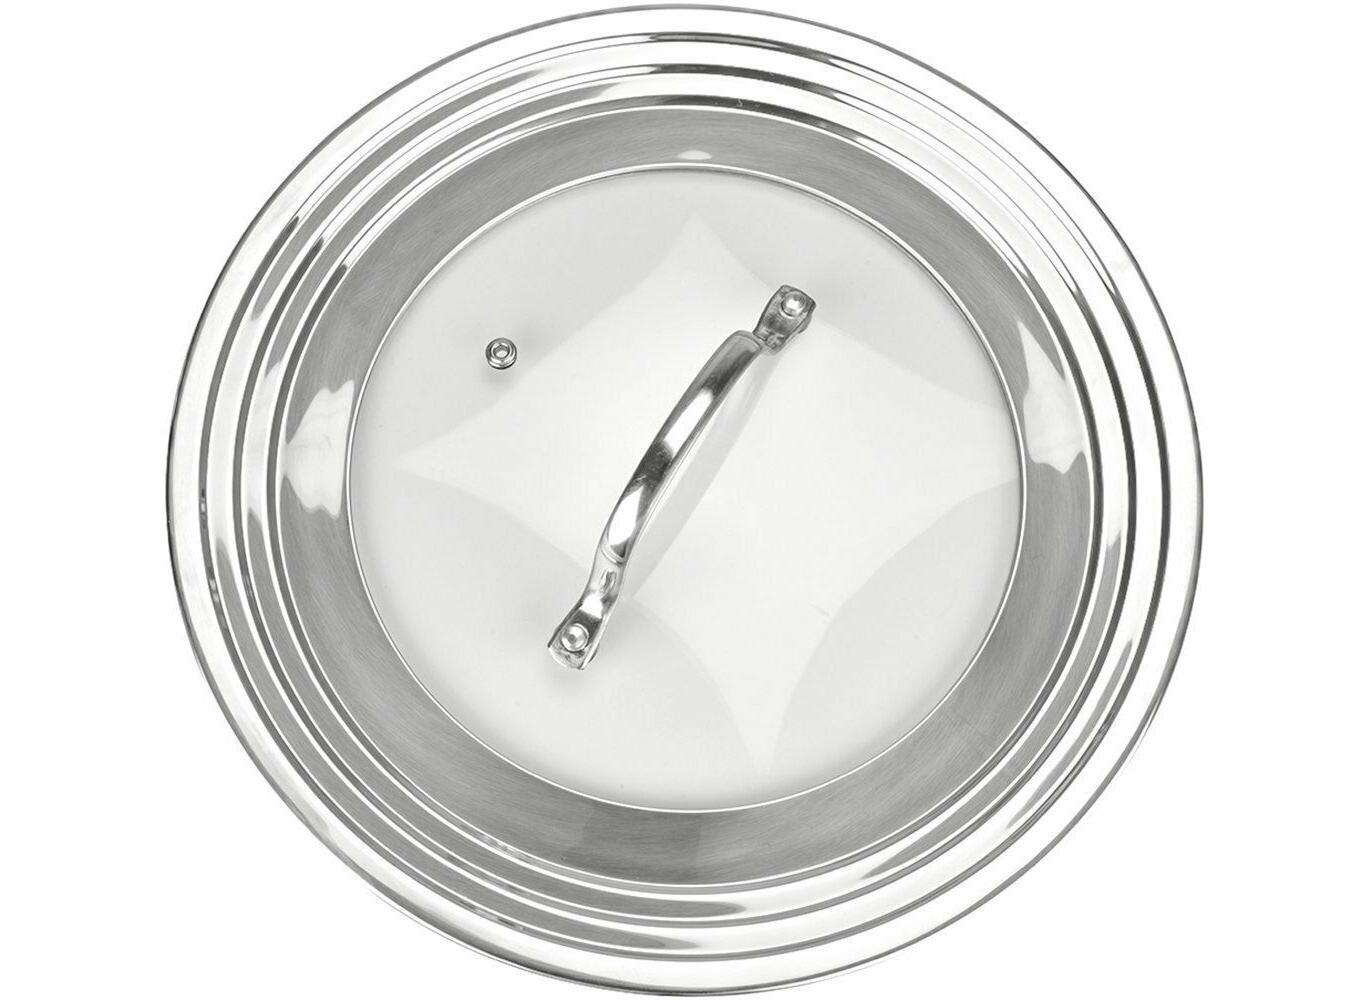 Elegant Stainless Universal Pots Pans Frying Pan Cover